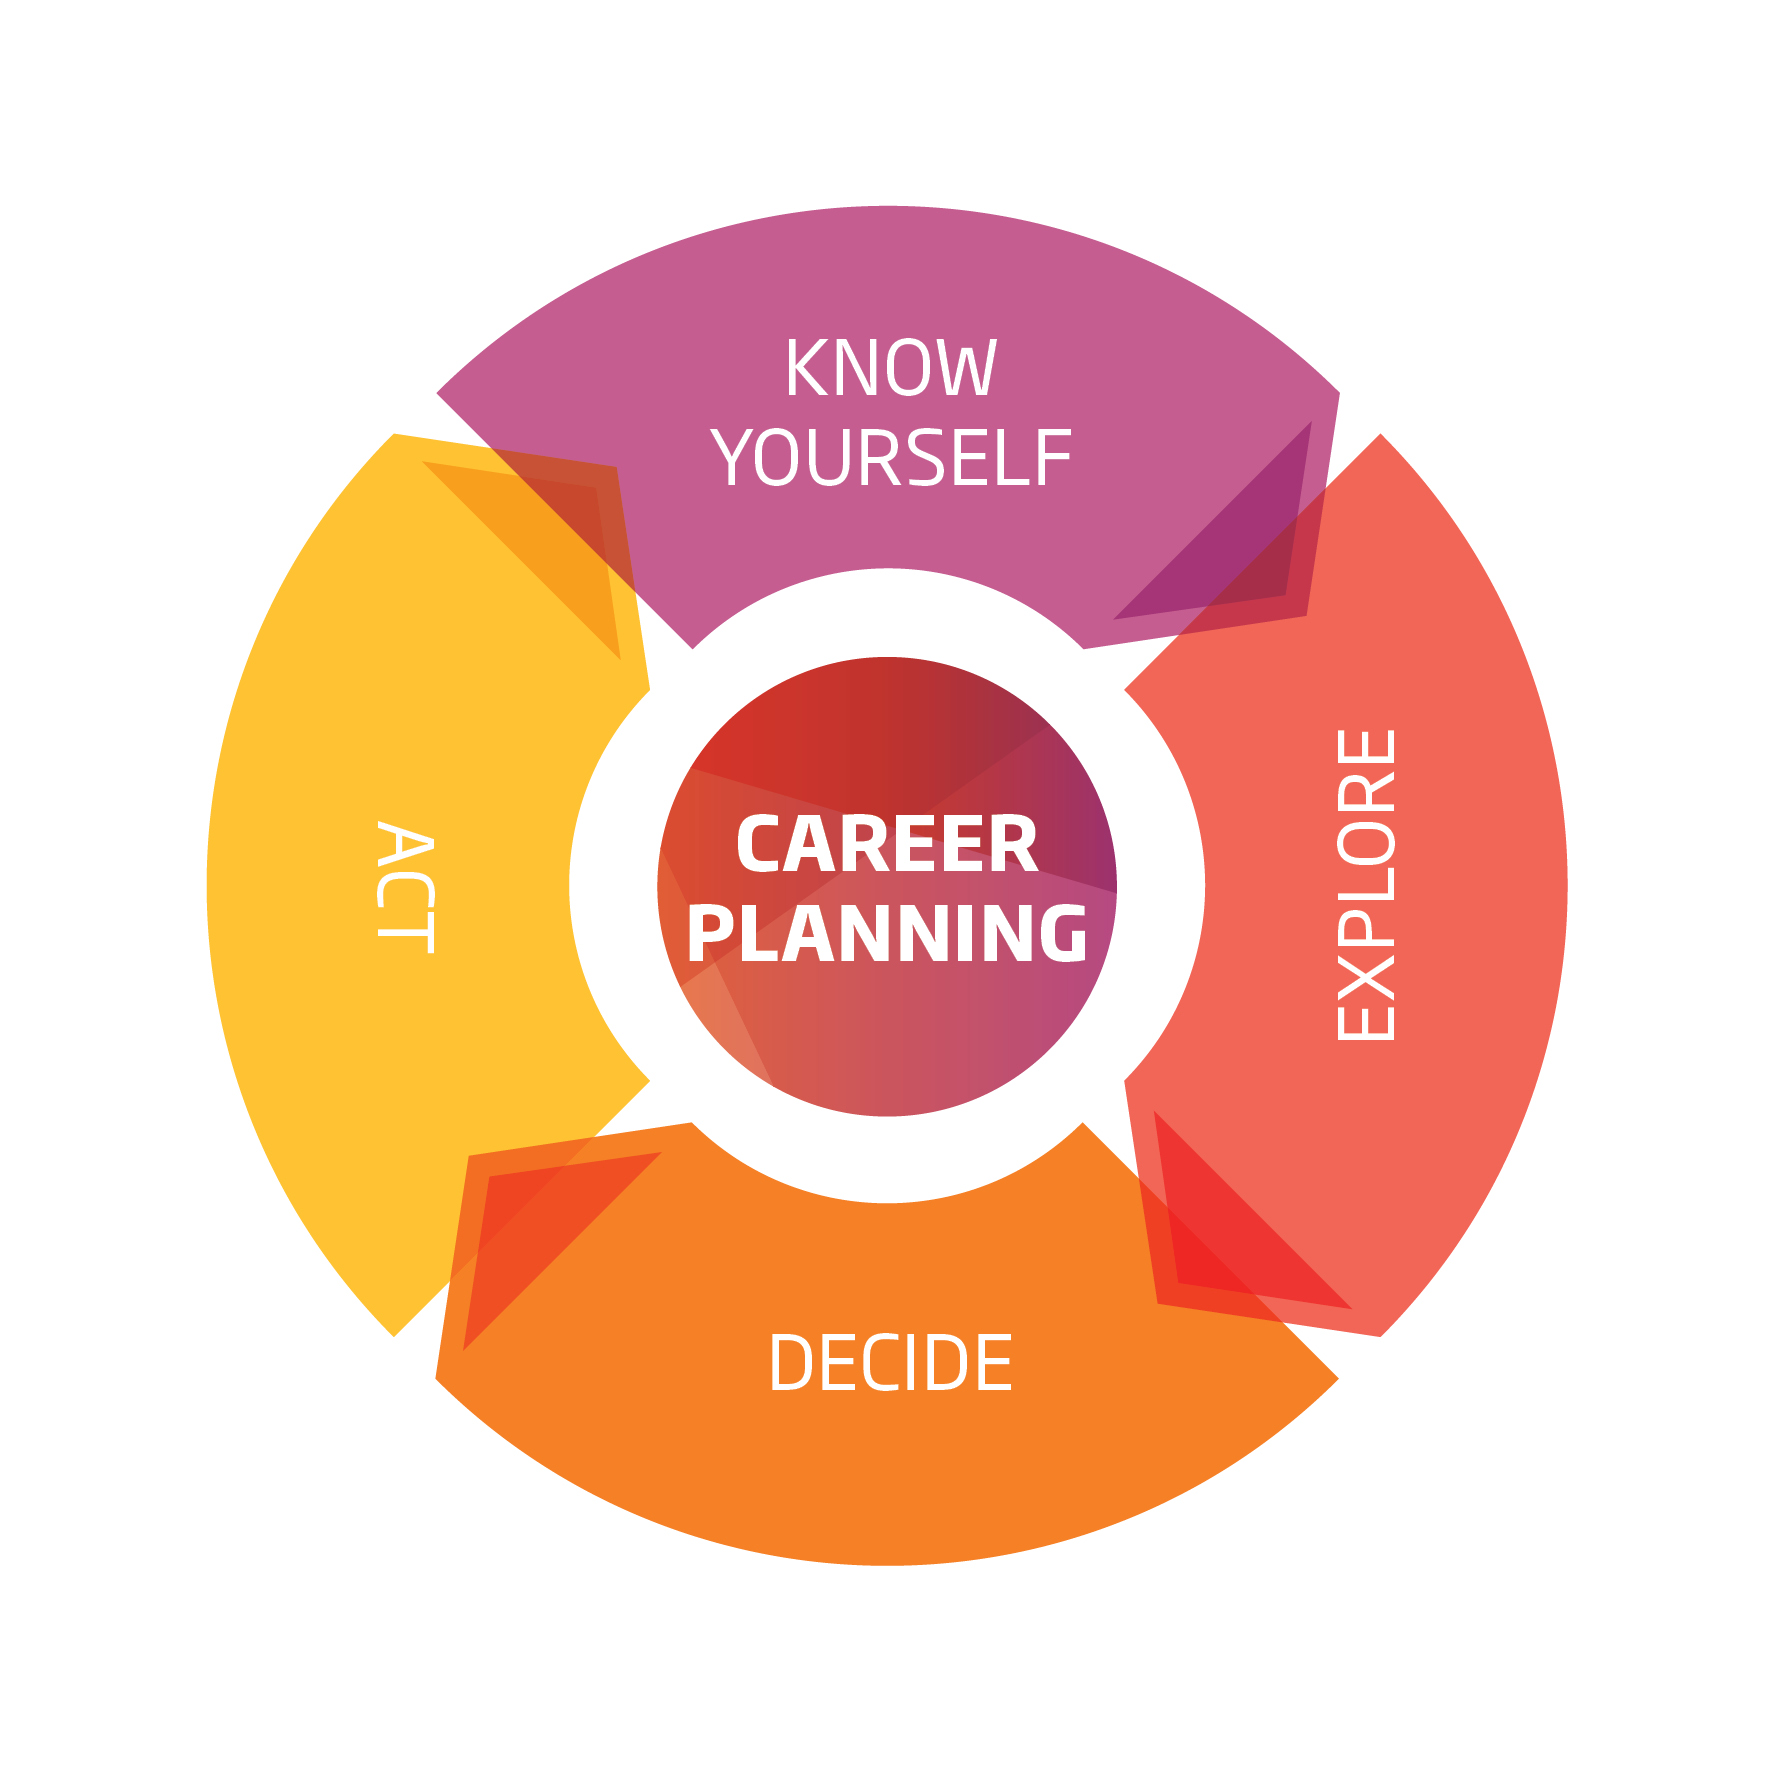 Need to plan your career but don't know where to start? Unitec has a team of Career and Employability specialists who can help you with that